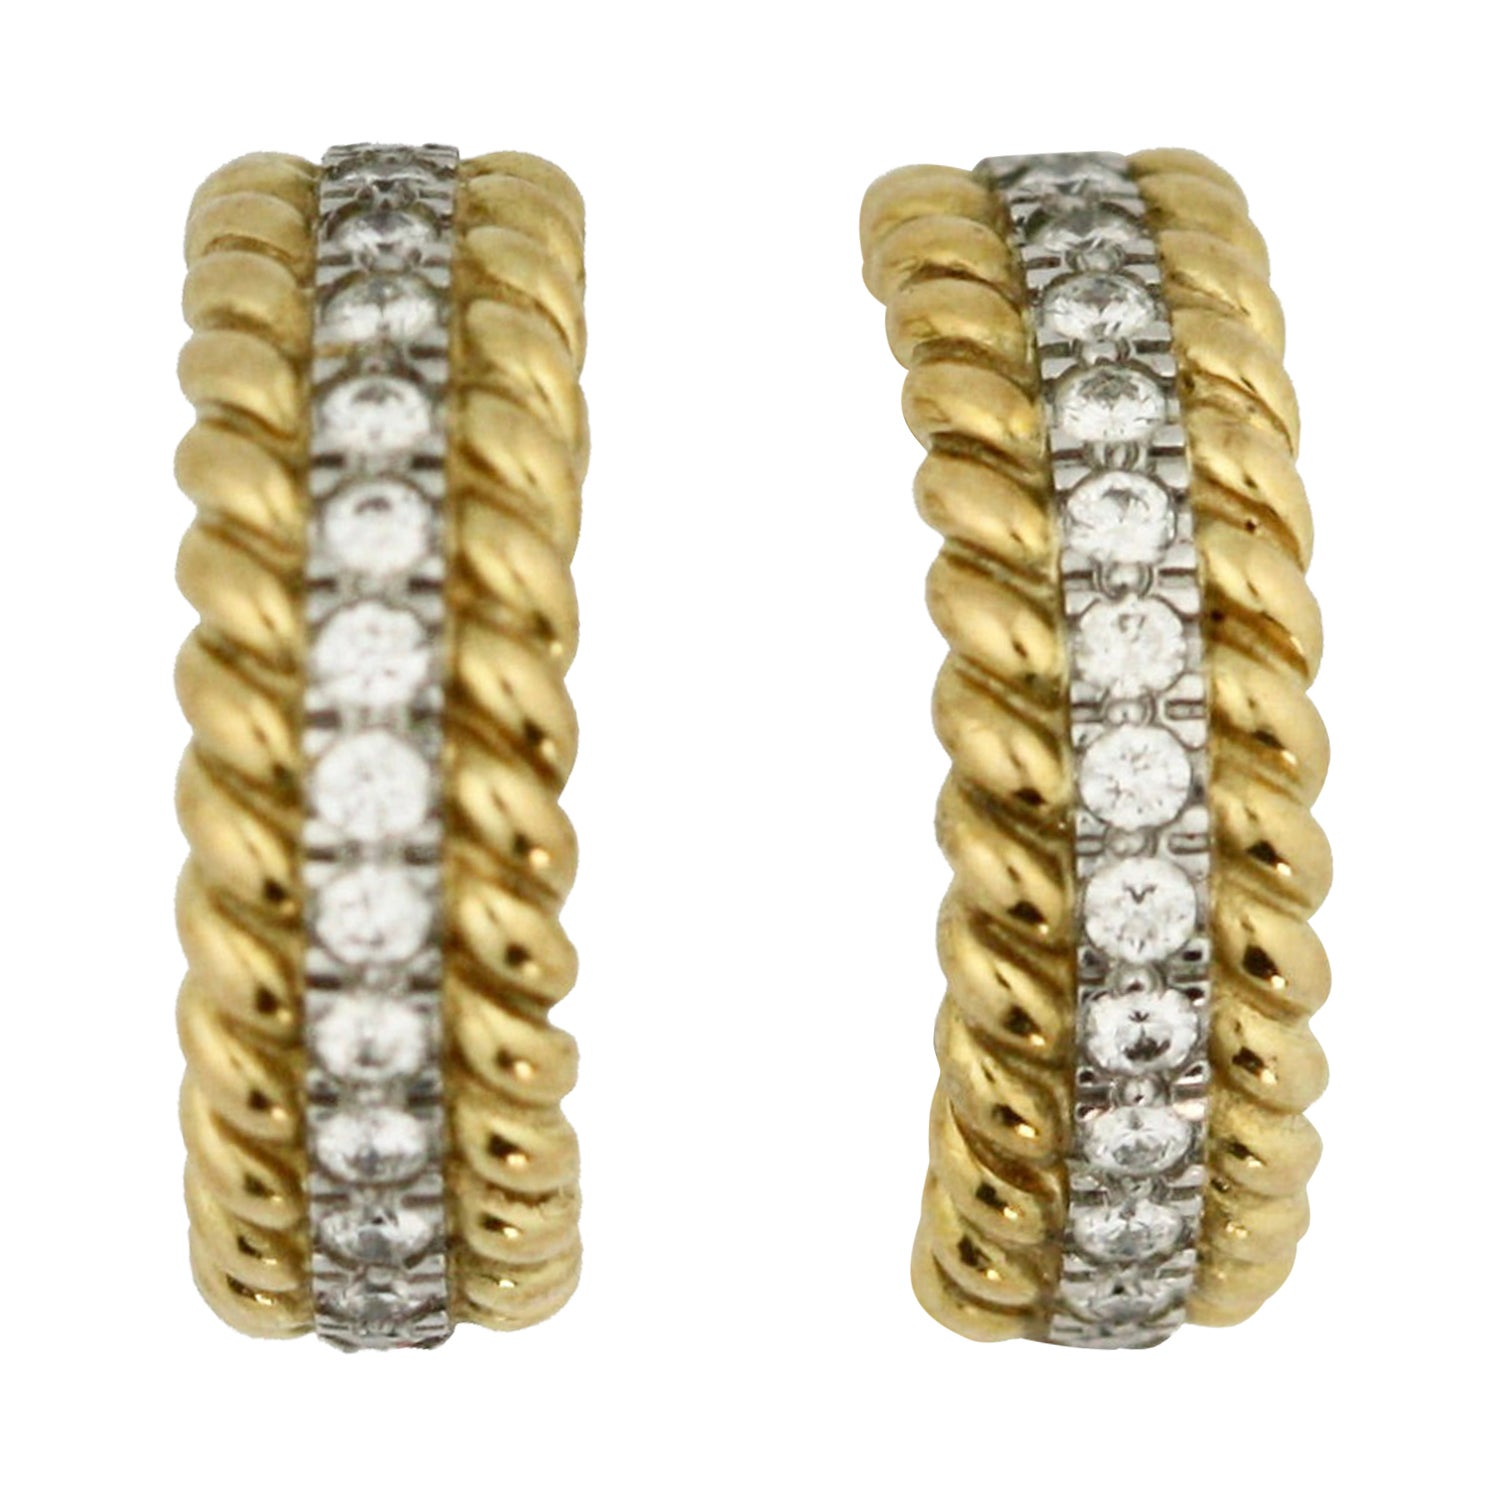 Pair of Platinum, Gold and Diamond Earrings Schlumberger for Tiffany & Co.